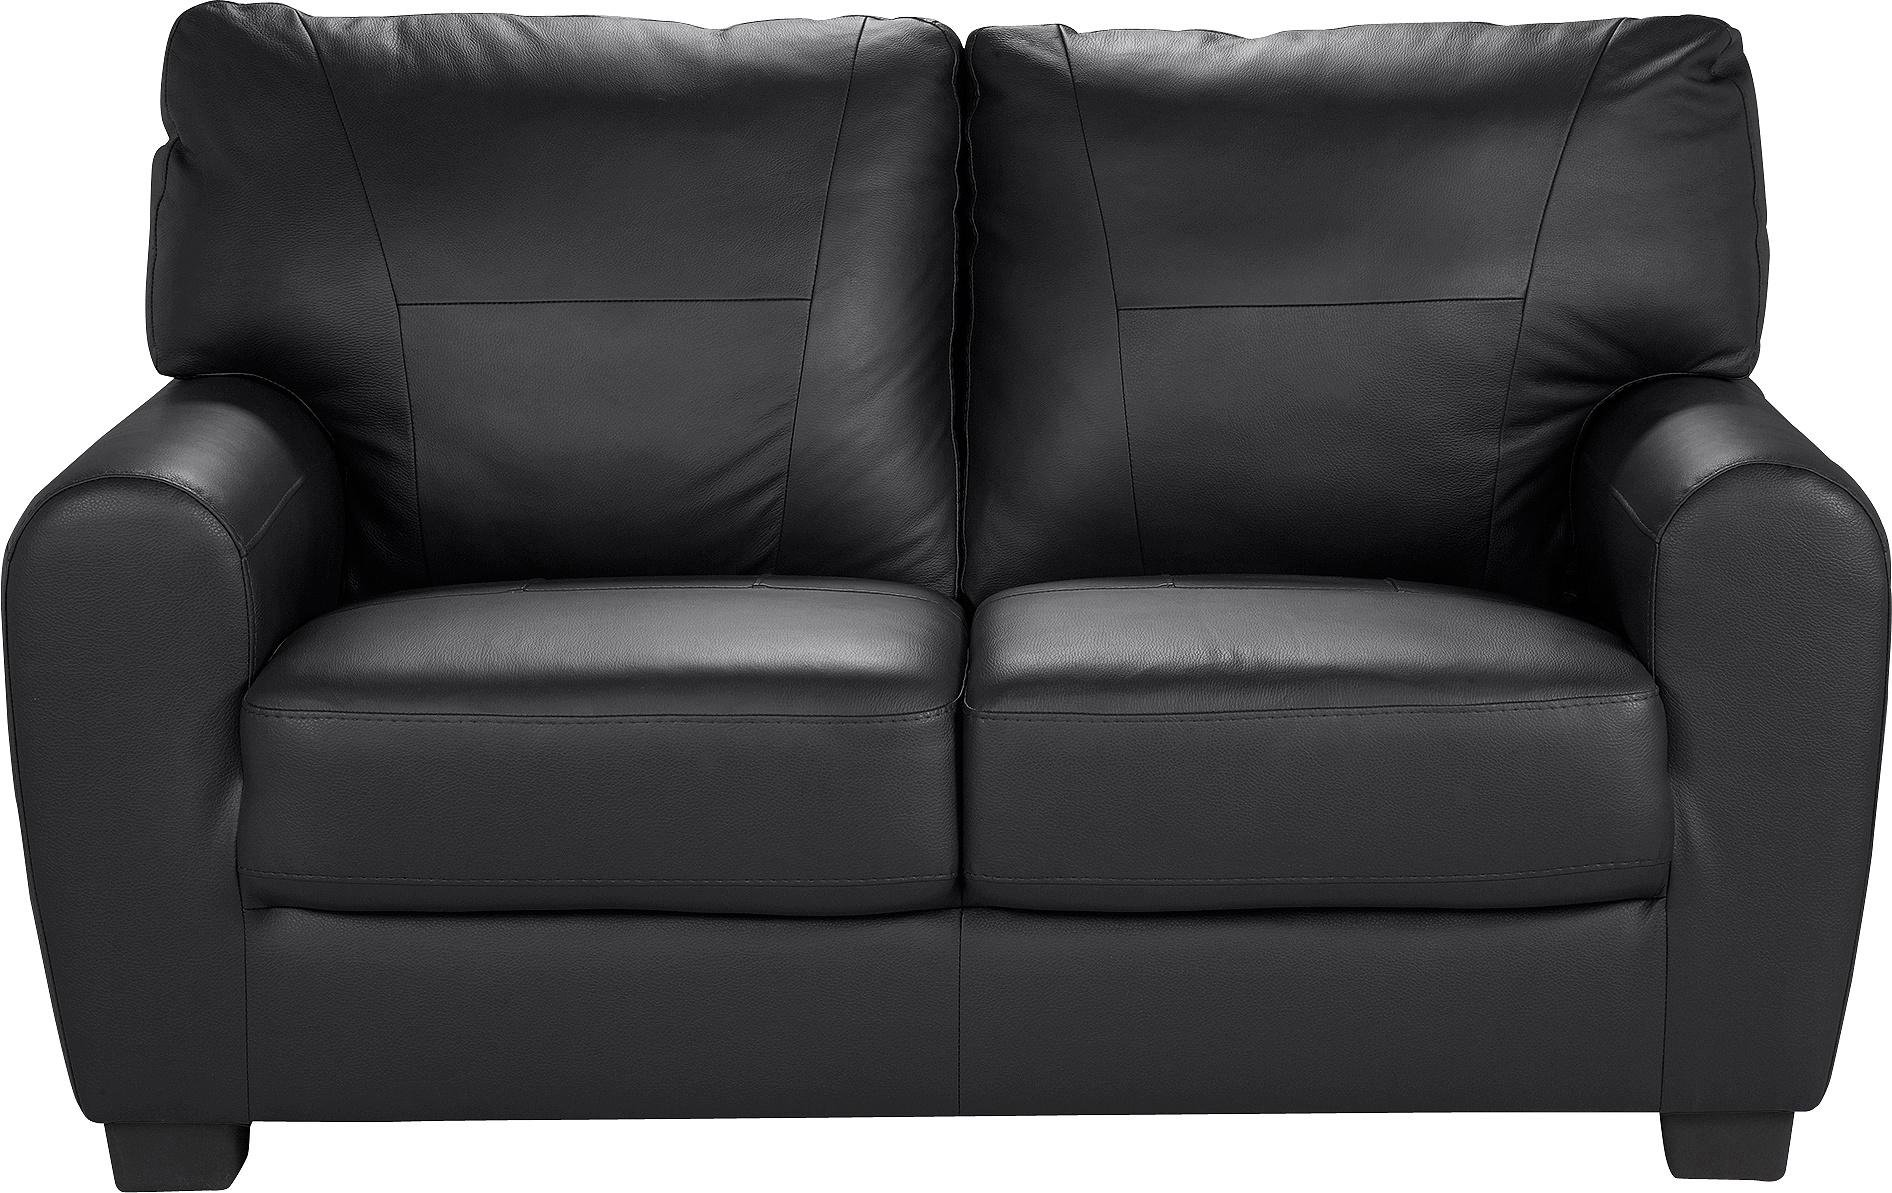 HOME - Stefano 2 Seater - Leather/Leather Effect Sofa - Black